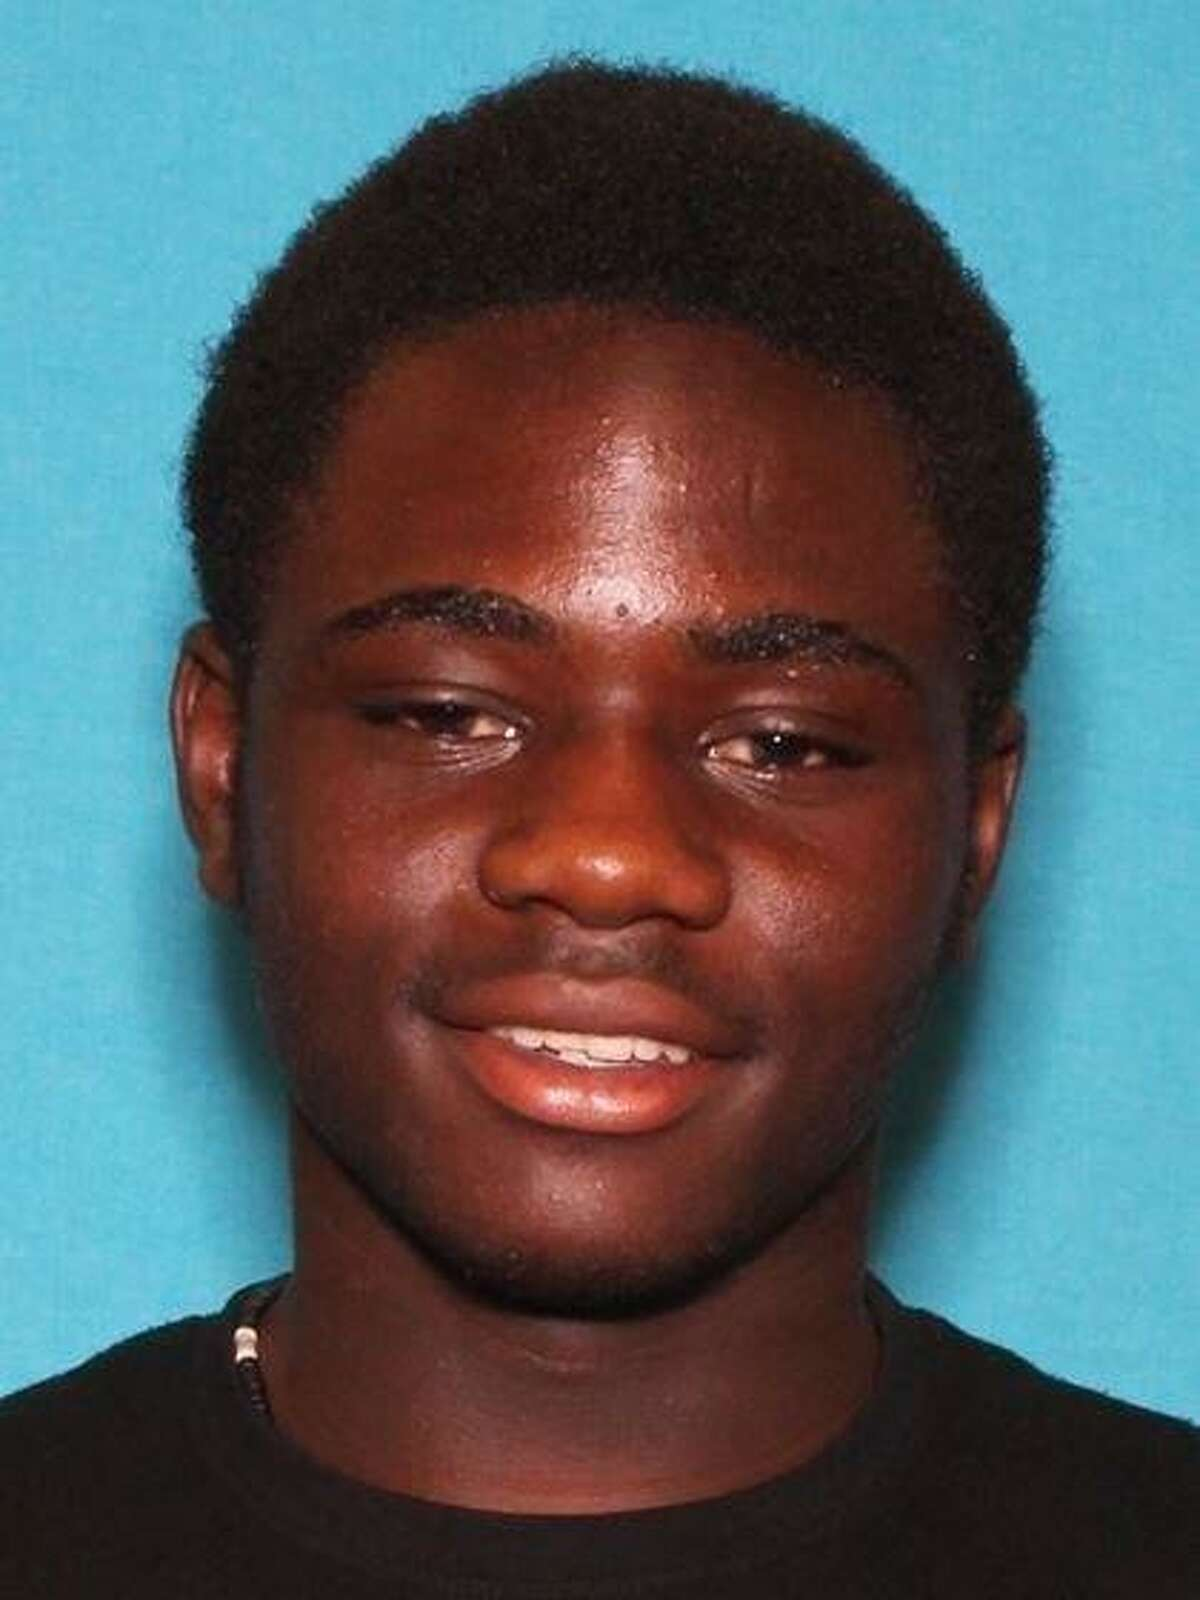 D'Anthony Carter 2-24-98 has an active warrant for capital murder and may be in the Houston area.